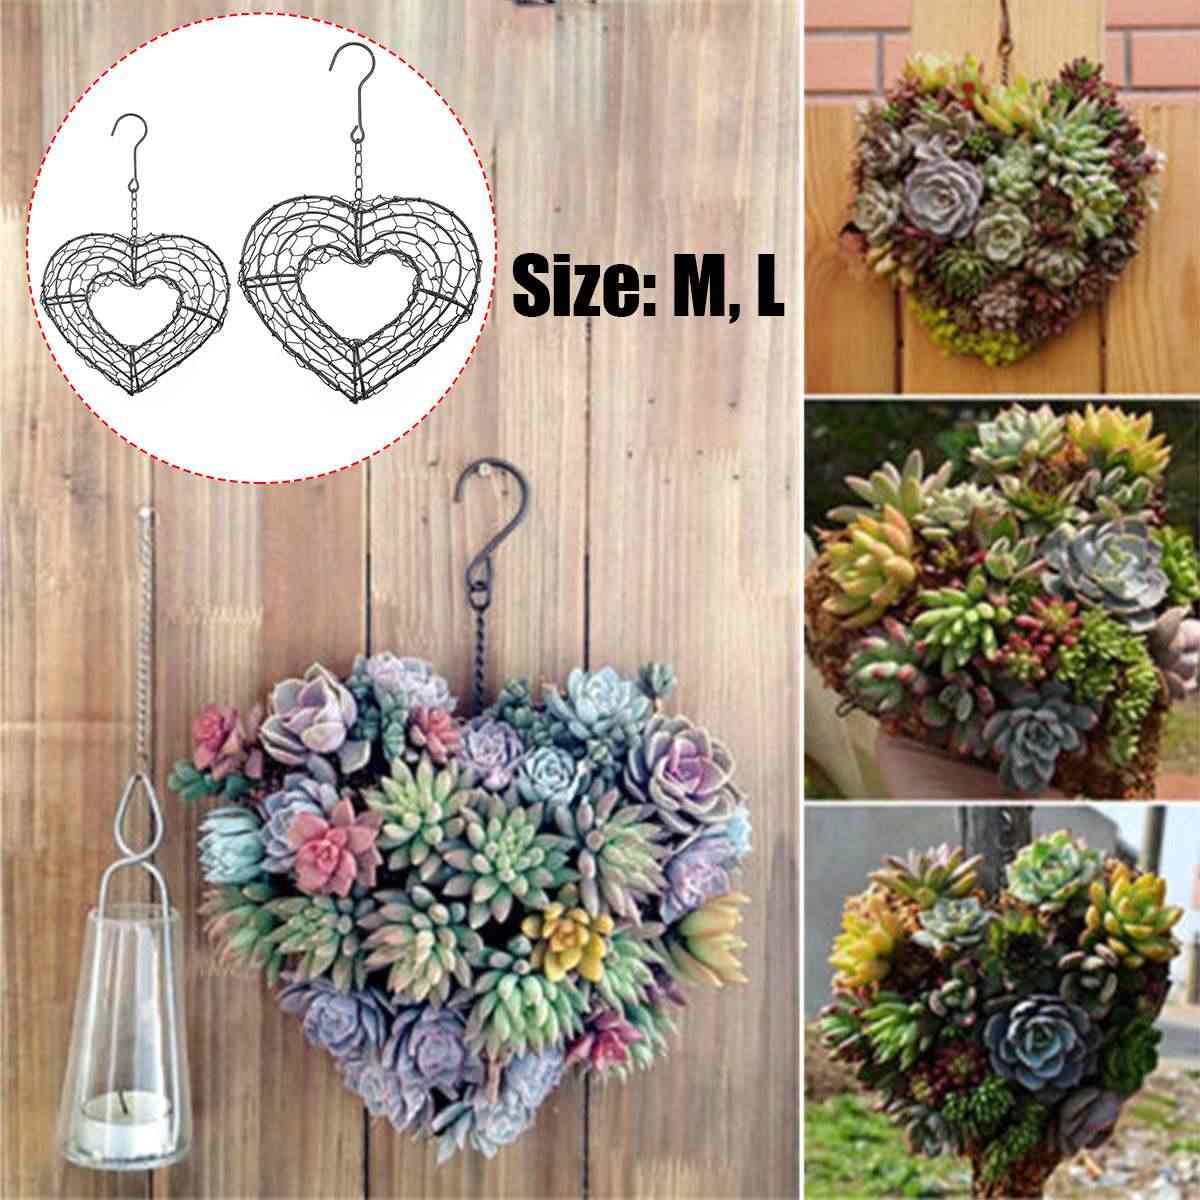 1PCS Romantic Iron Hanging Succulent Heart Shape Wreath Frame Metal Planter Holder Decor Holder Pot Basket for Succulent Plants